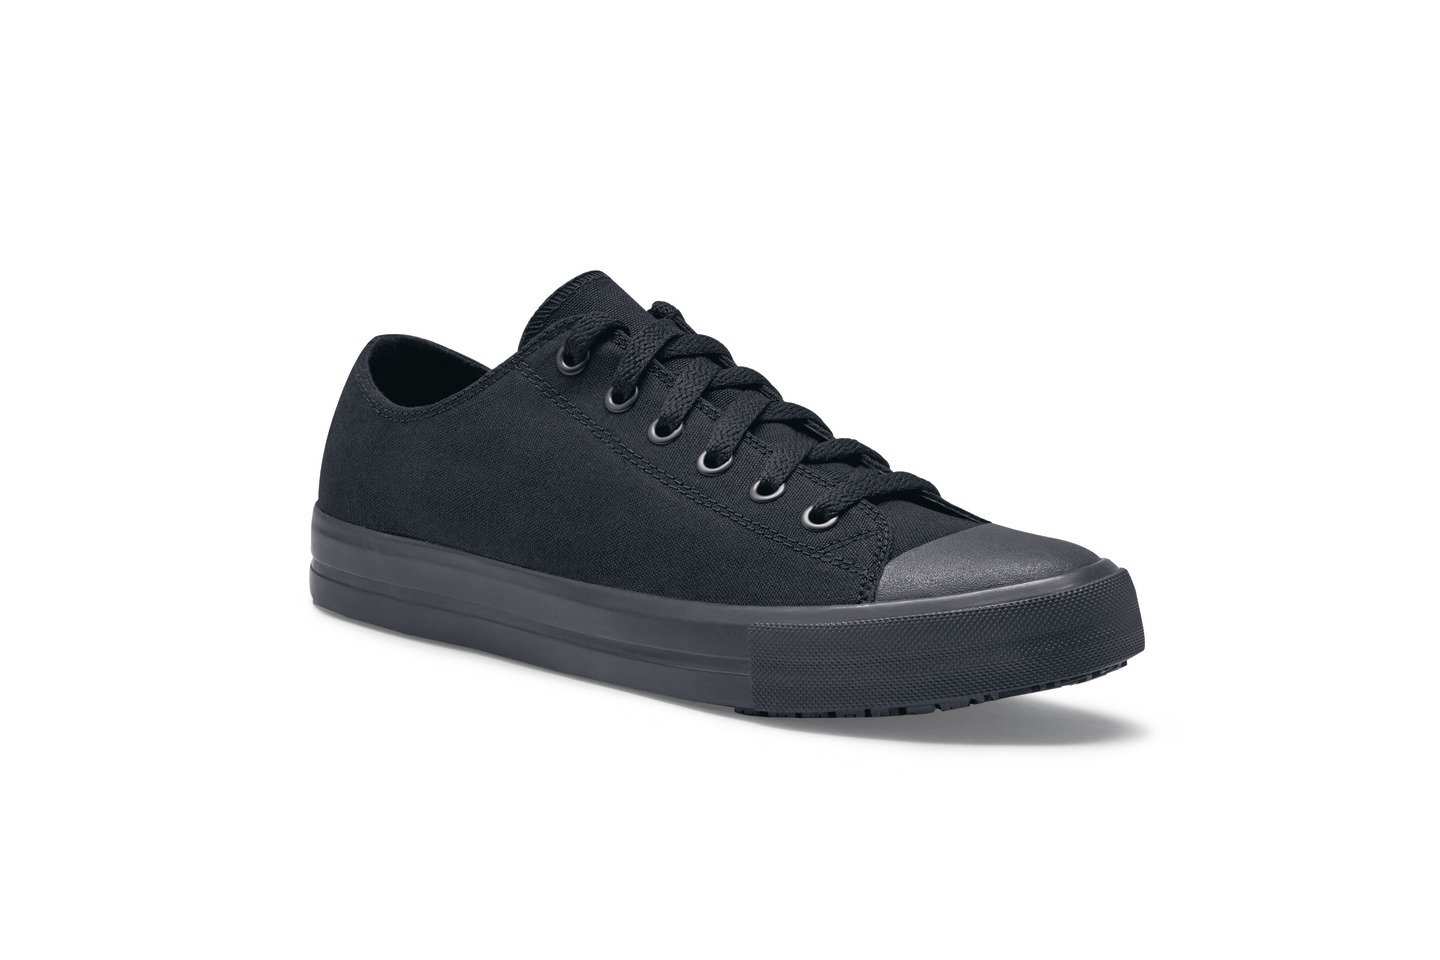 Shoes for Crews 39428-38/5 DELRAY Lä ssige Canvas-Schuhe fü r Damen, Rutschhemmende, Grö ß e 5 UK, Schwarz